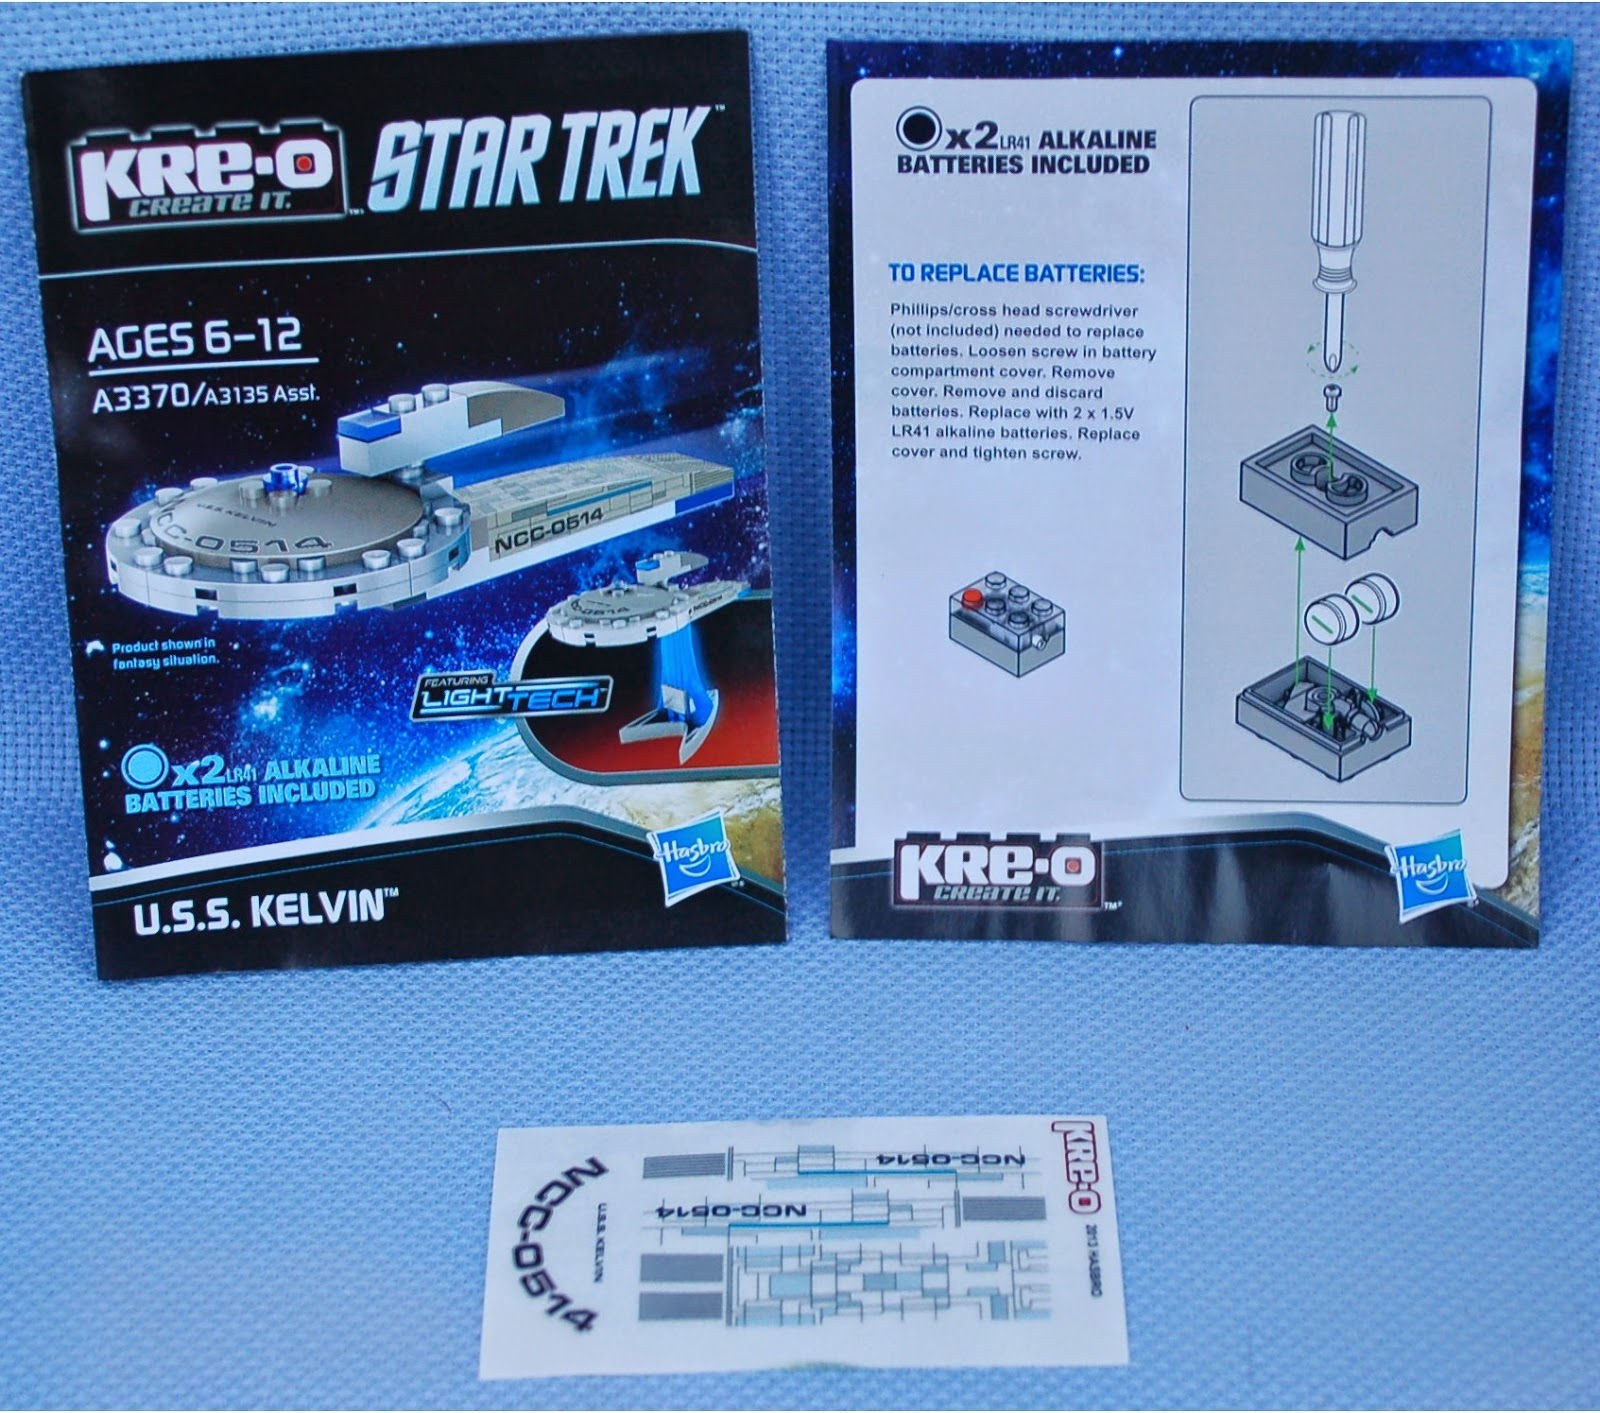 kre o star trek instructions